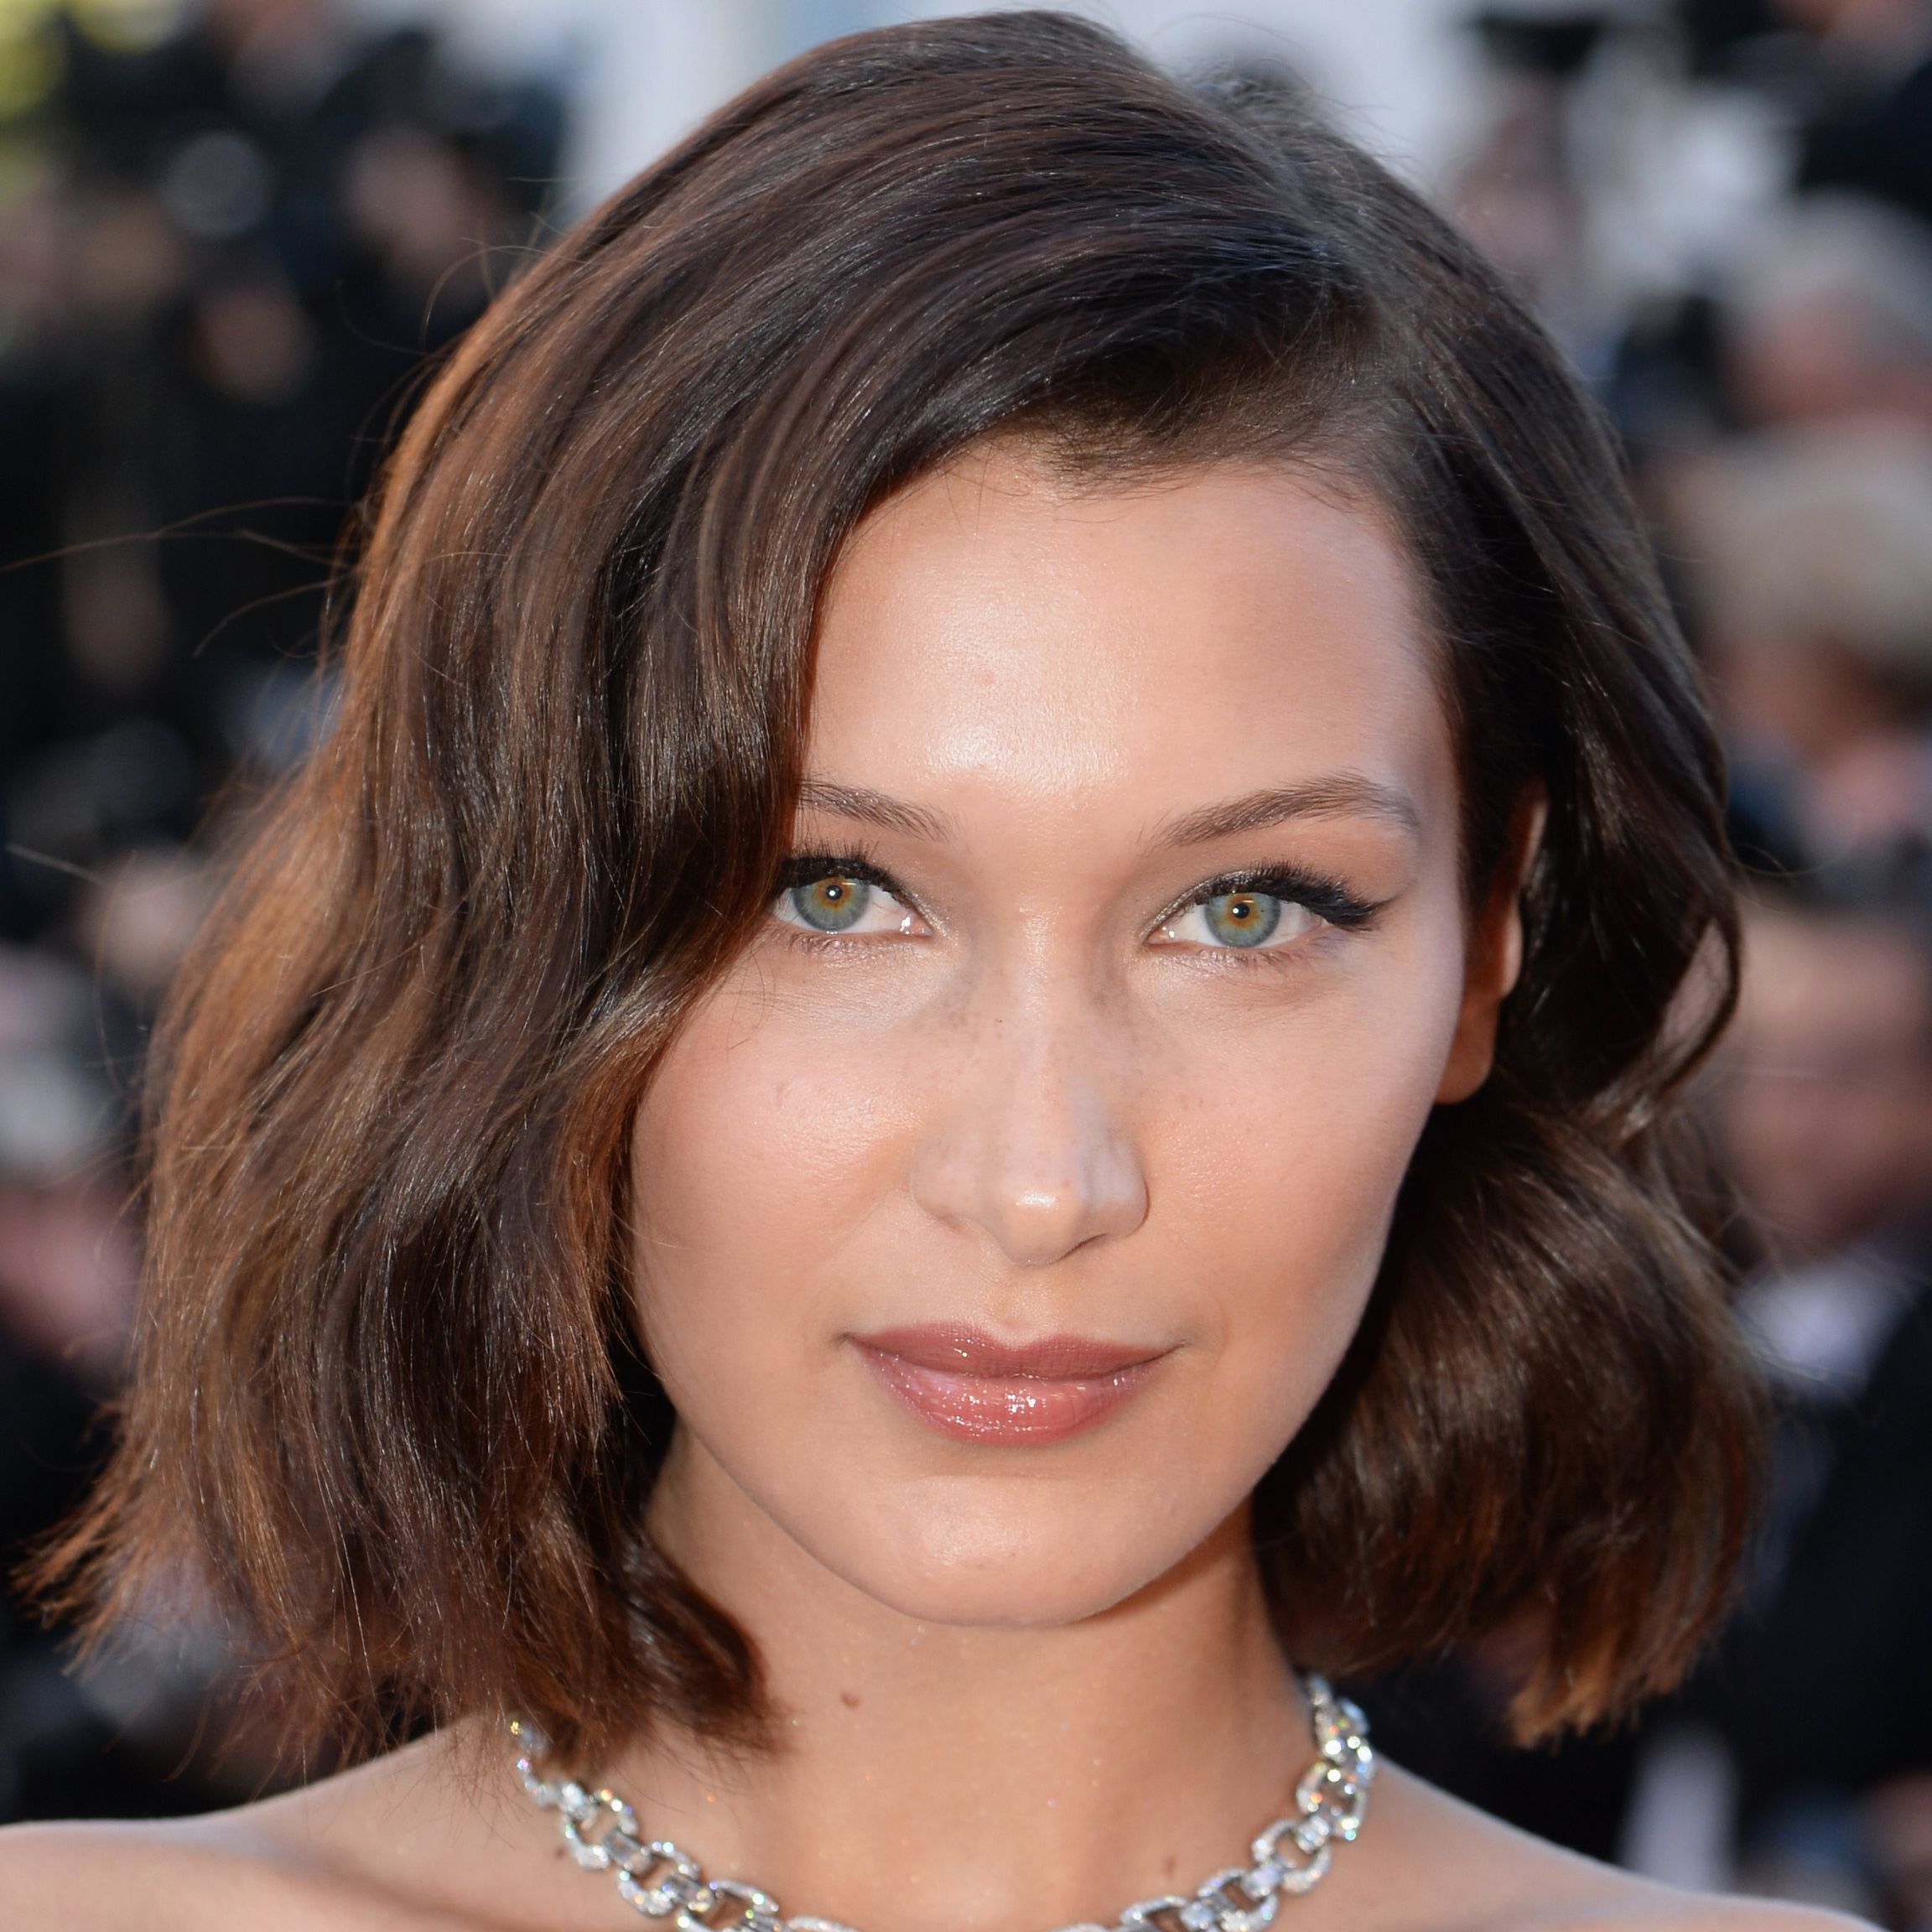 25 Stunning Prom Hairstyles for Every Hair Type